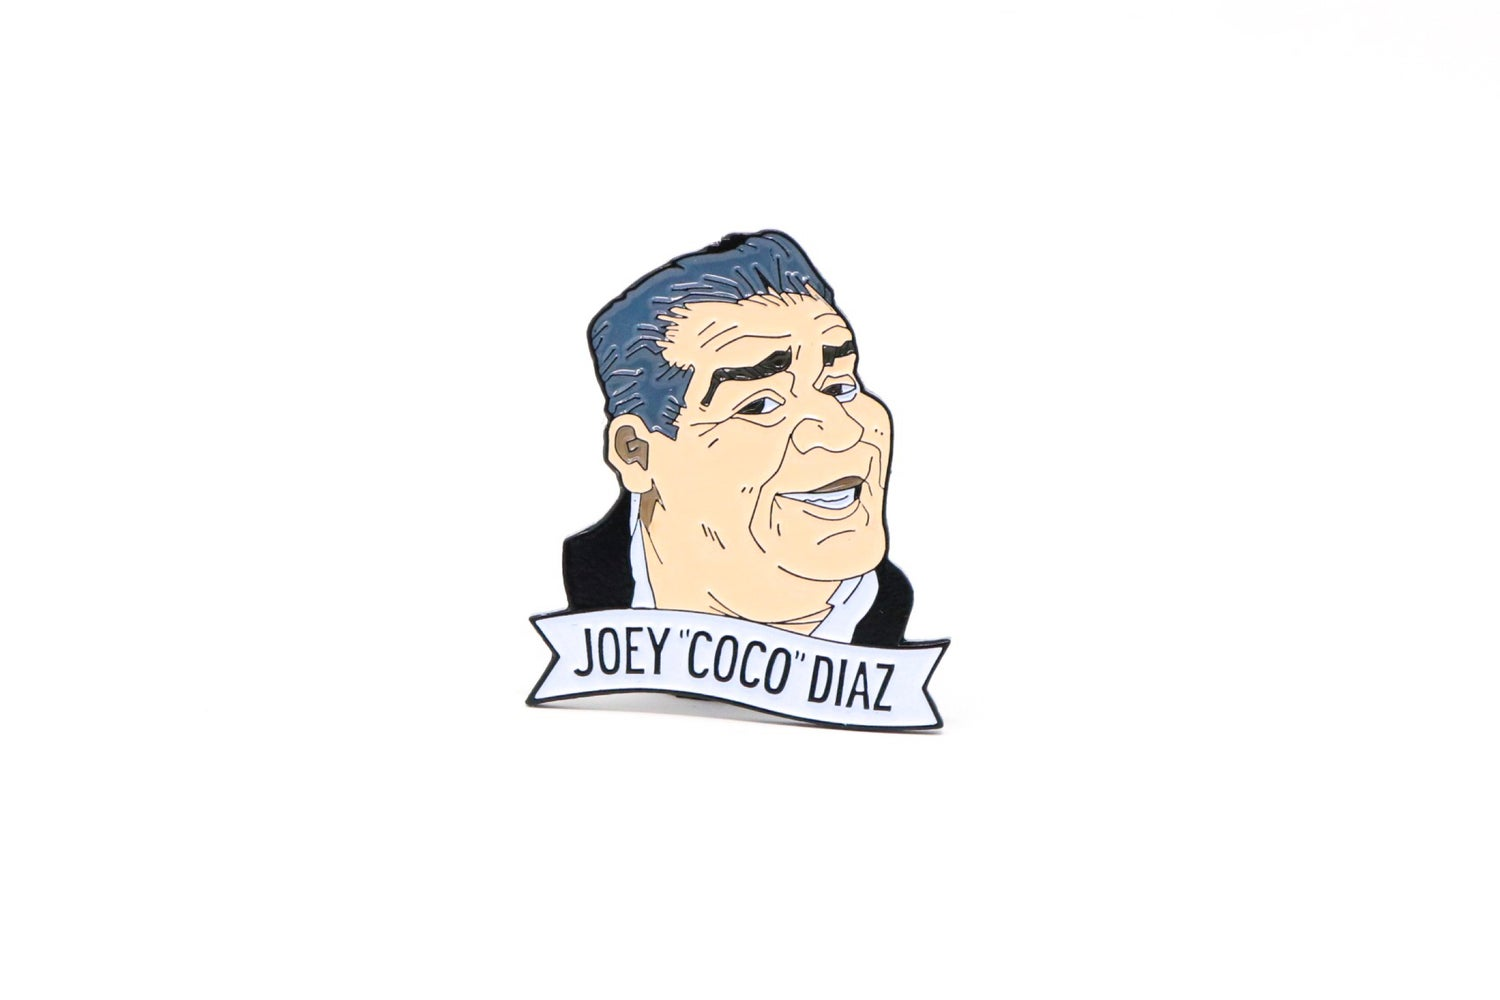 Image of Joey Coco Diaz Enamel Pin